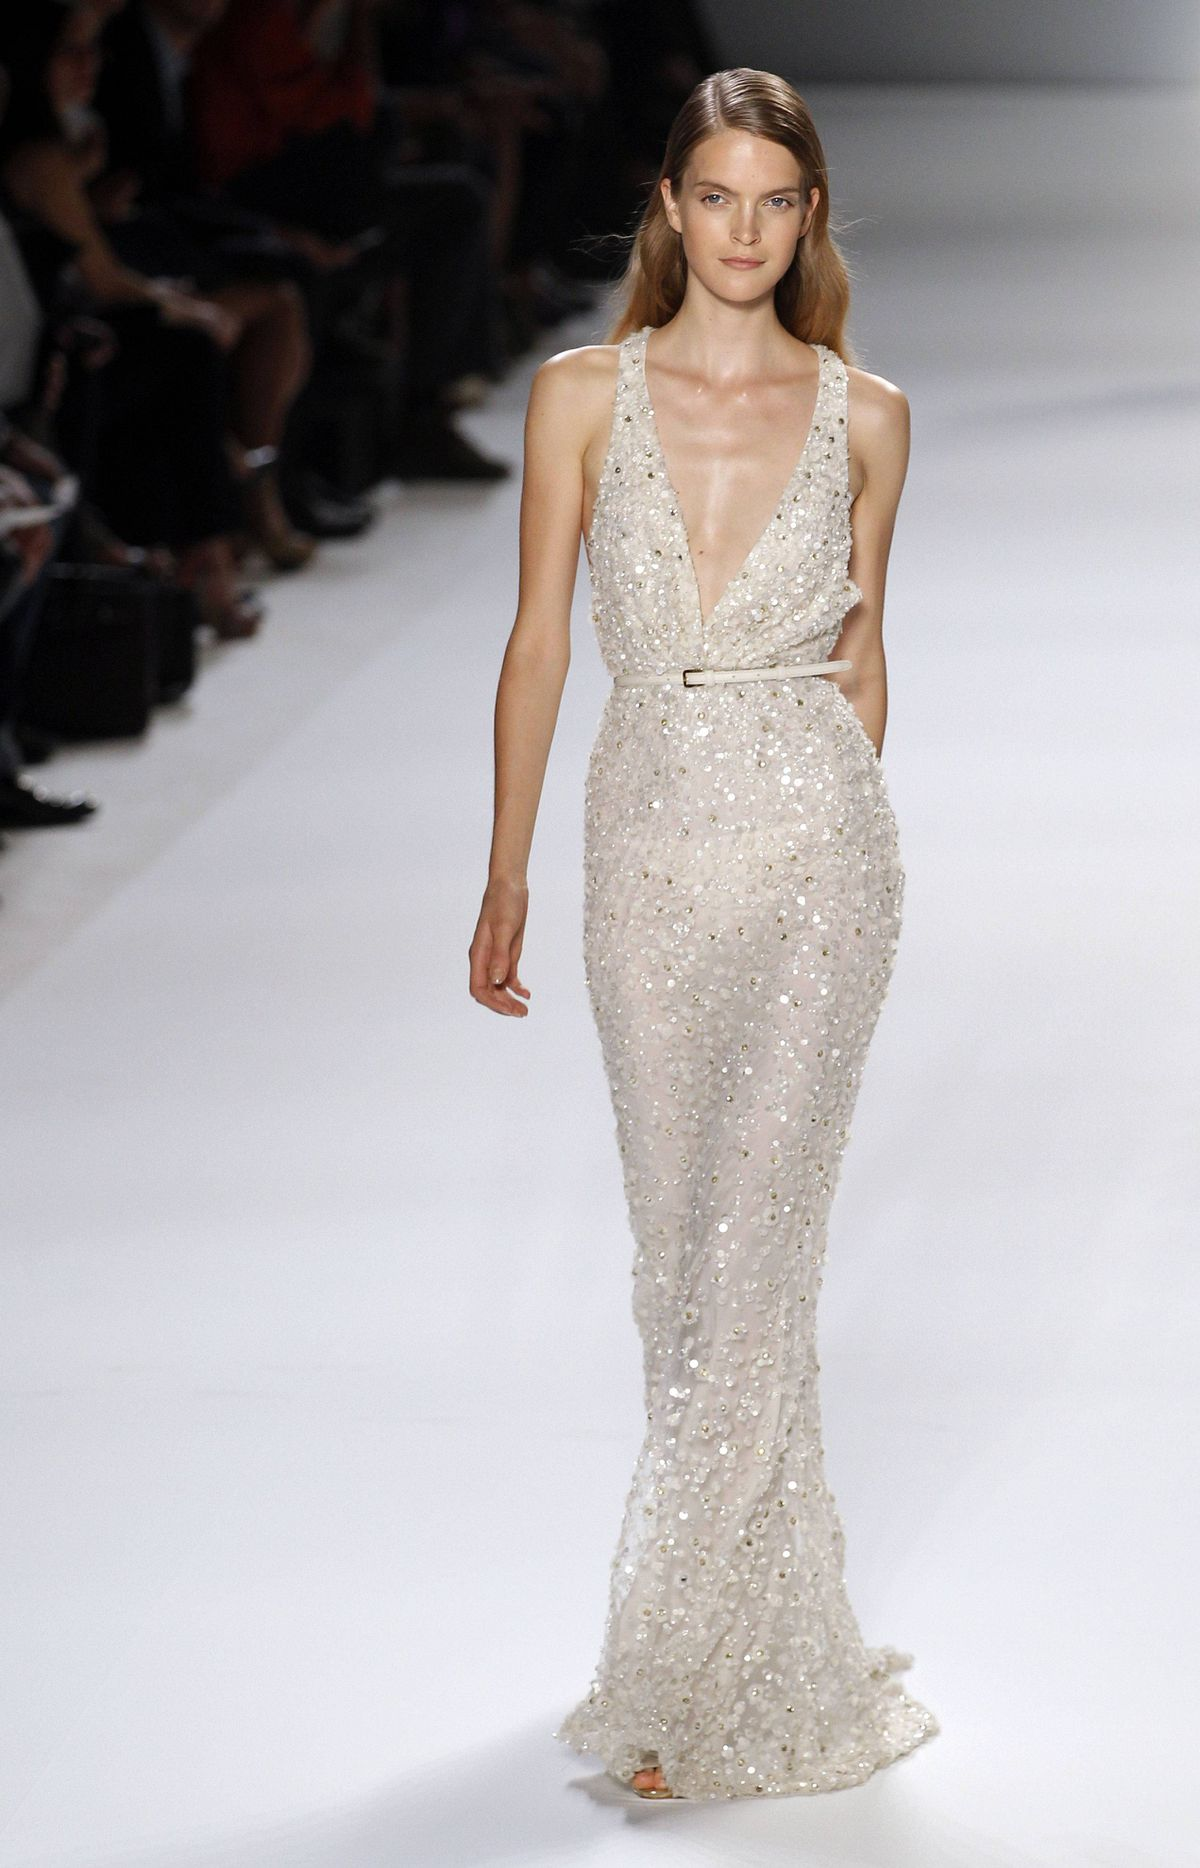 """Elie Saab Spring/Summer 2012 ready-to-wear collection Lebanese designer Elie Saab creates fashion for the red carpet. I suspect he's never met a spangle he doesn't like. As my show seatmate Flare editor Lisa Tant tweeted: """"Hollywood has him on speed dial."""" So this sequin dress, albeit pretty, came across as more of the same."""